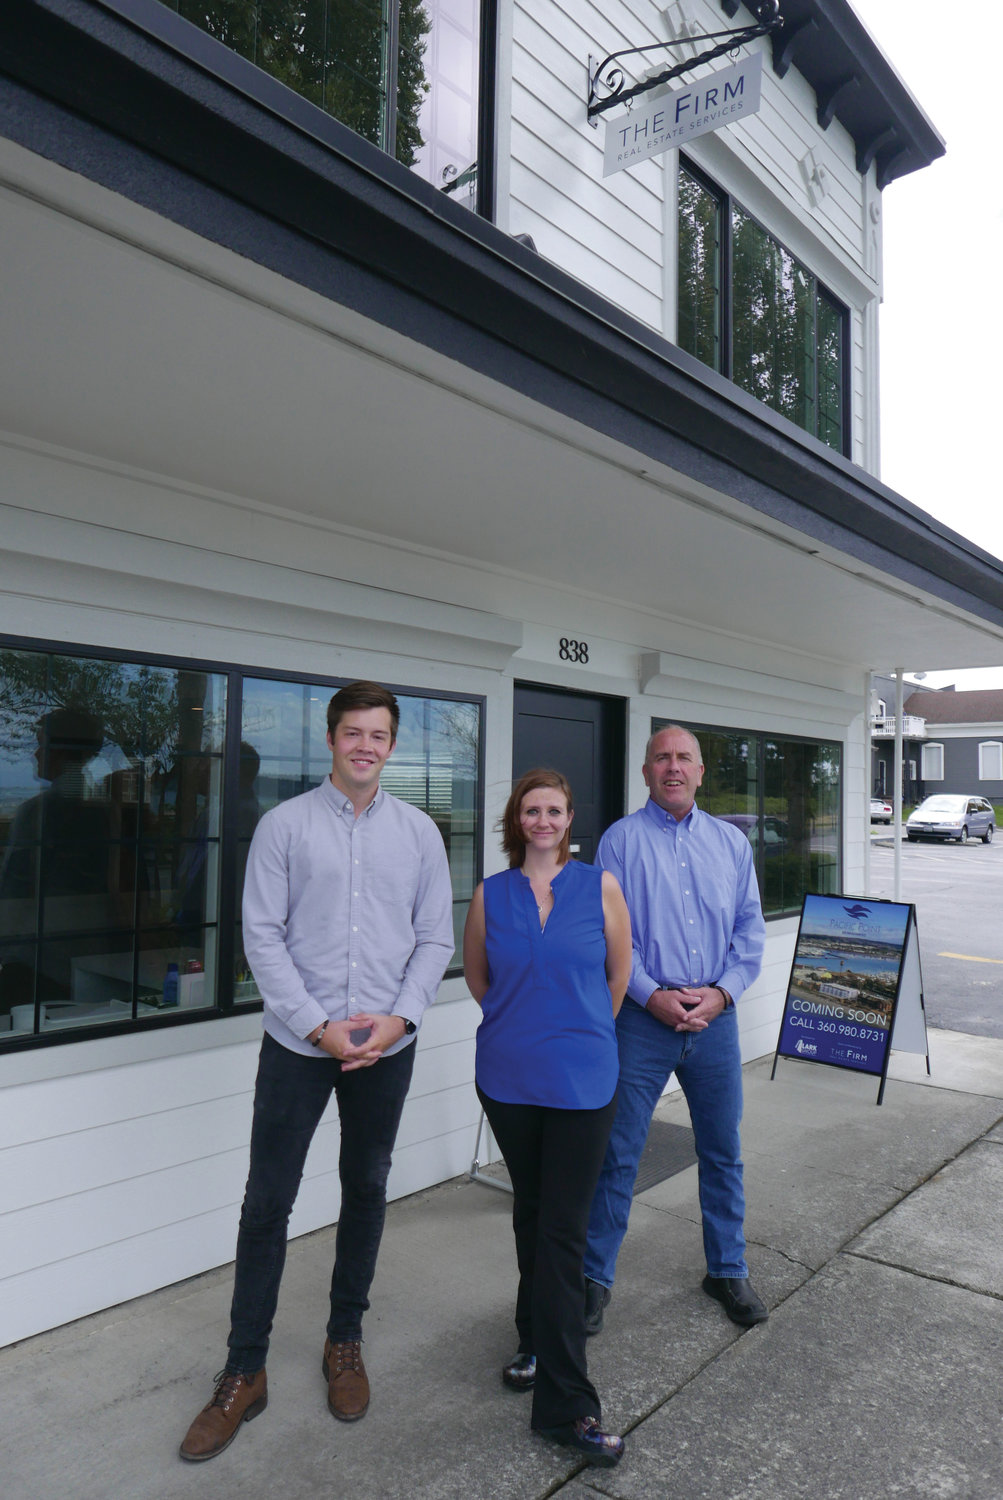 From left: Michael Hughes, Cesilie Gile and Chris Hughes of The Firm Real Estate Services outside the company's office at 838 Peace Portal Drive in Blaine.